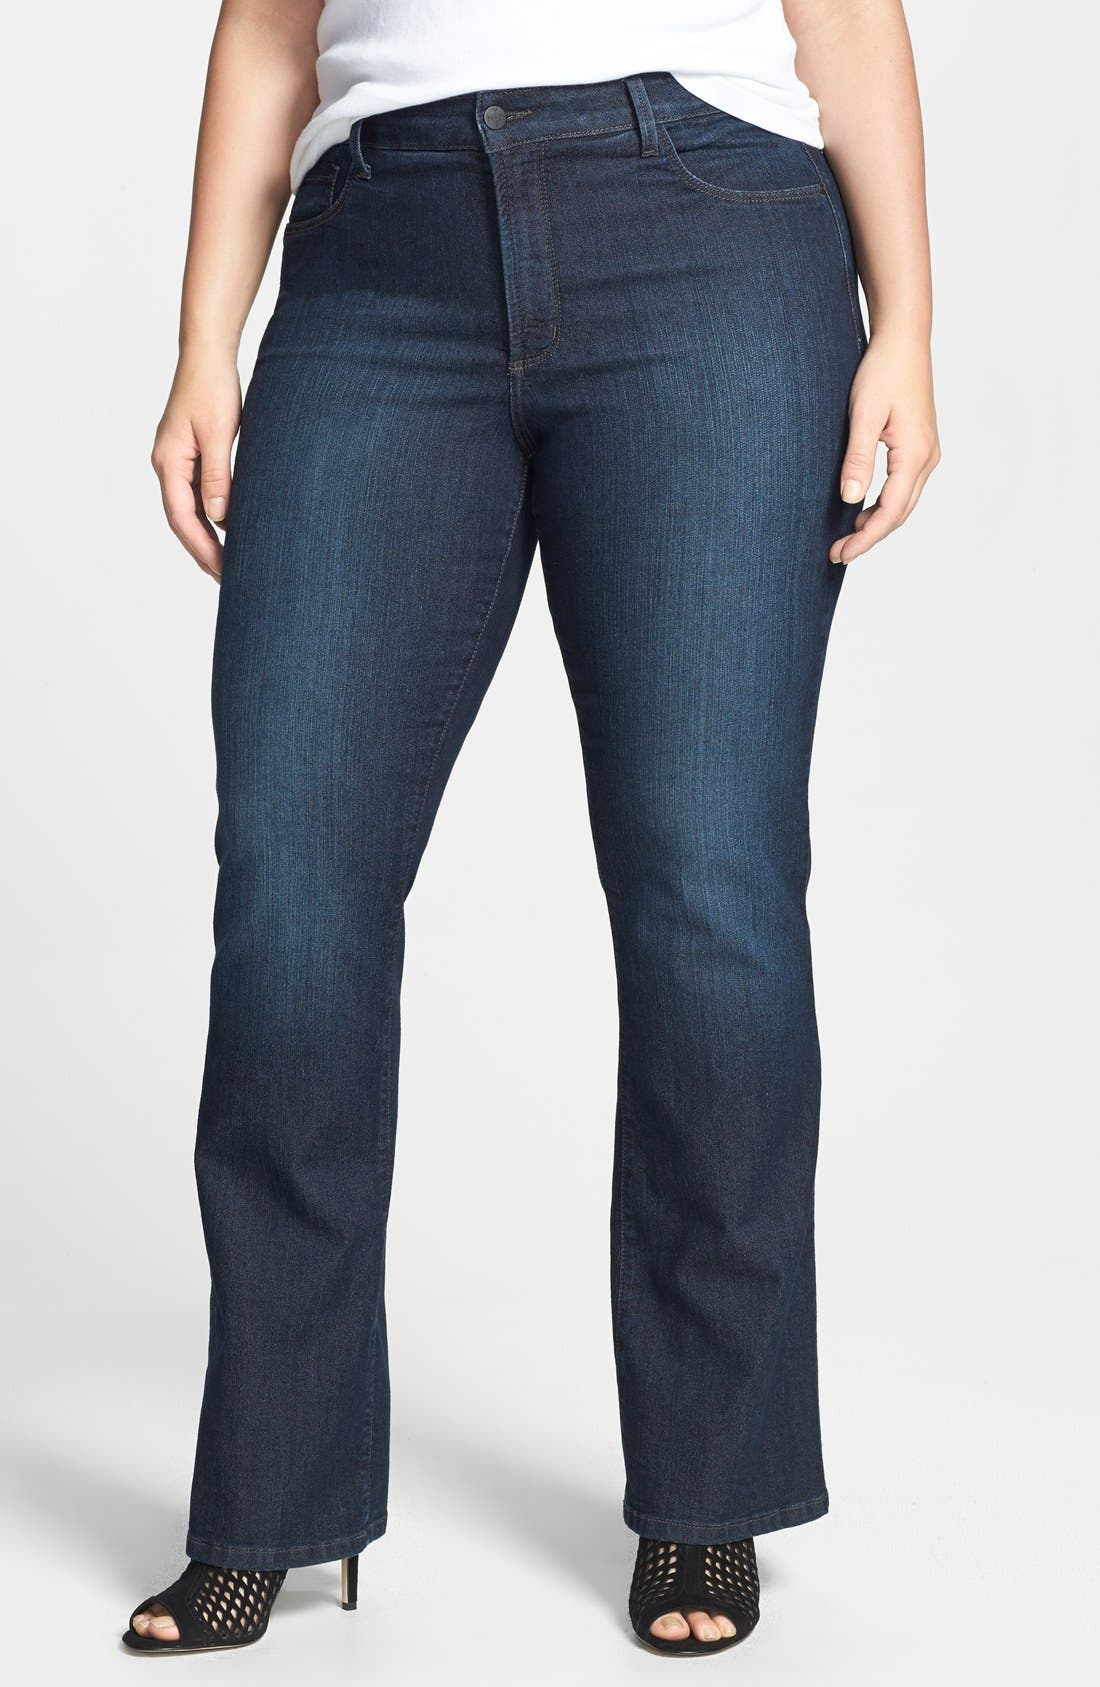 Alternate Image 1 Selected - NYDJ 'Barbara' Embellished Pocket Stretch Bootcut Jeans (Burbank) (Plus Size)